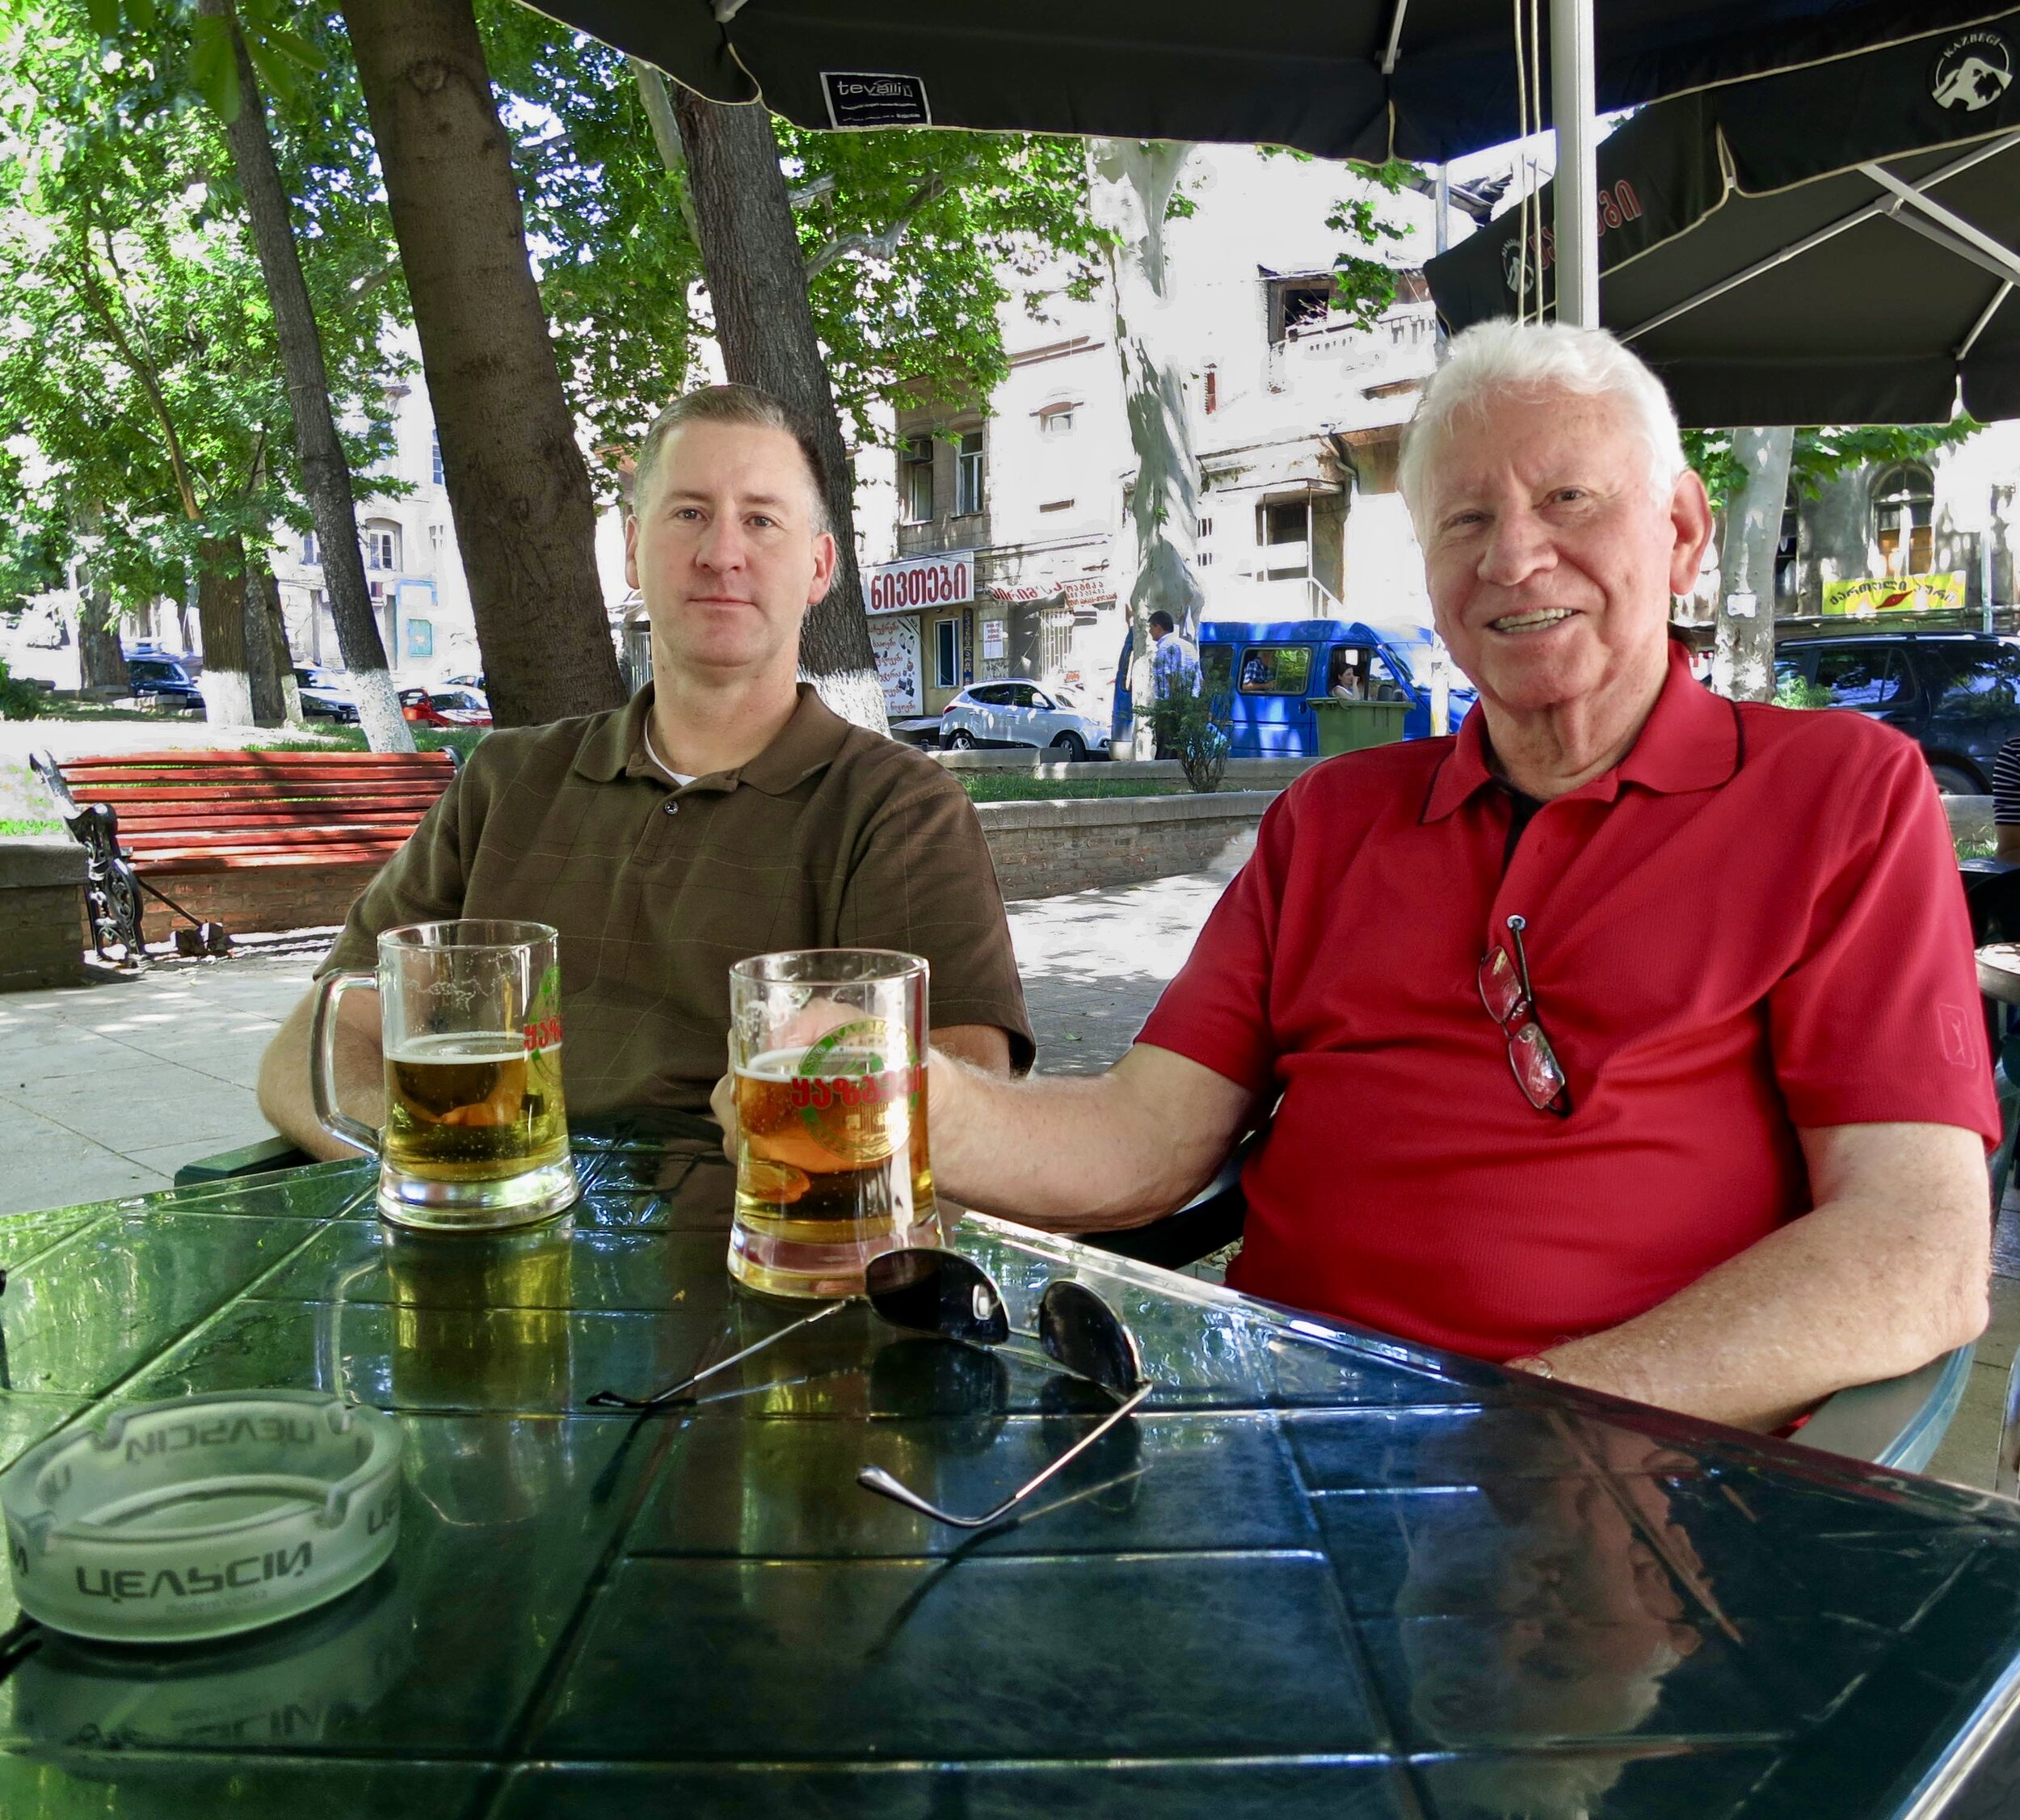 Sunday, June 16, 2013 (Father's Day). Me and my father in 9 April Park at the same establishment. I didn't know it then (although I had a strong suspicion) this would be my last visit to Georgia in my role at the time. Gaumarjos!